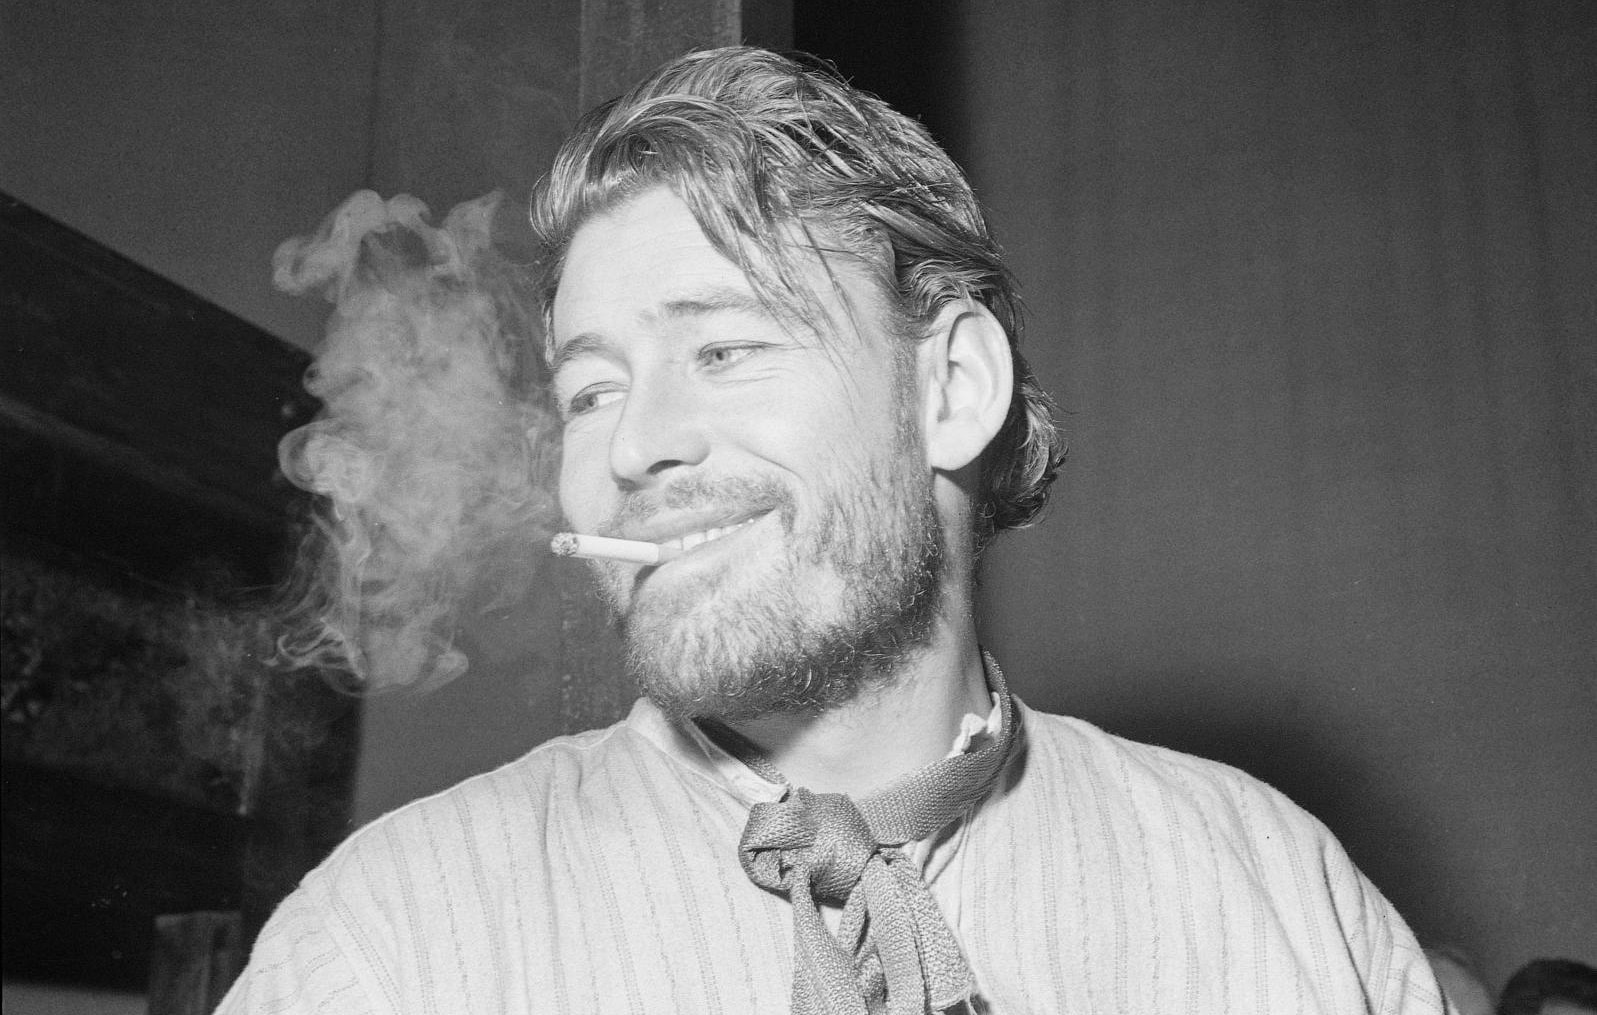 Peter O'toole Background